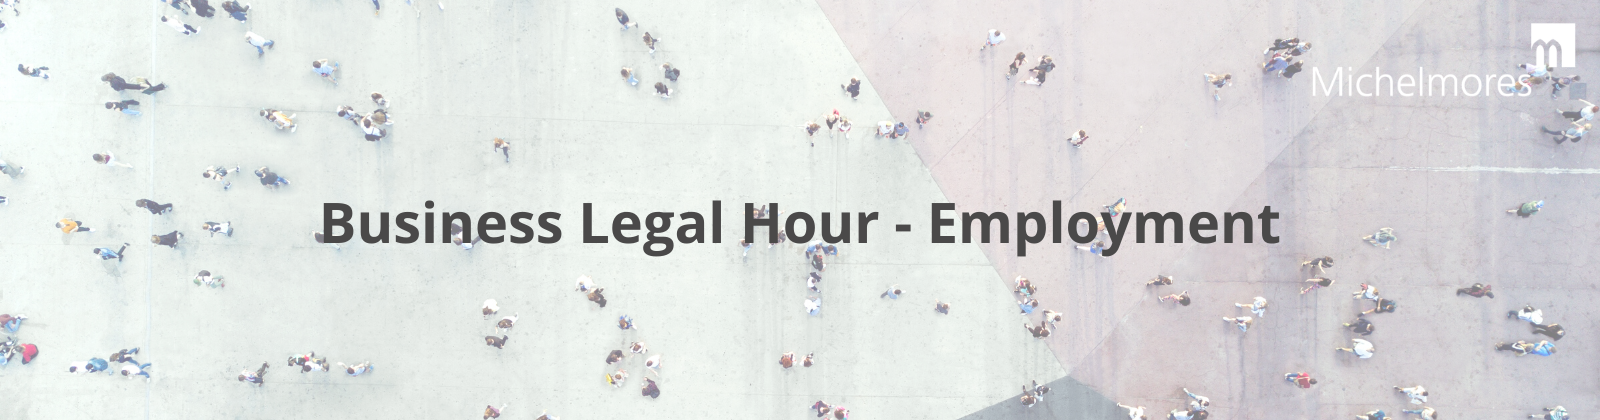 poster for Business Legal Hour series of webinars